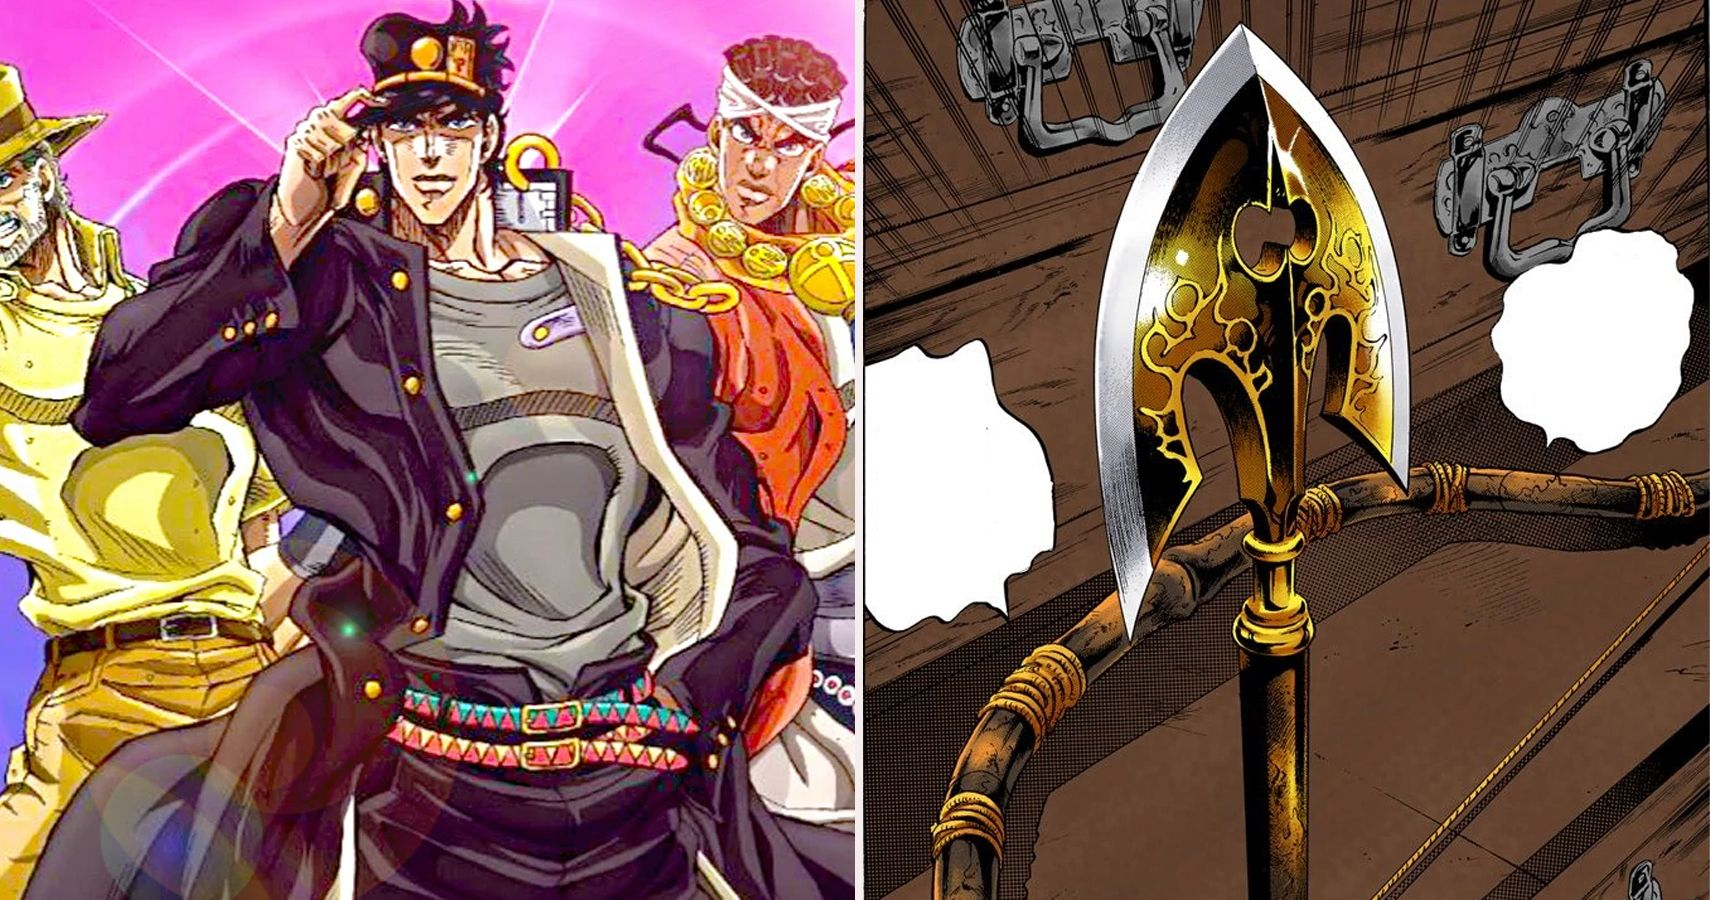 Jojo S Bizarre Adventure 10 Rules You Didn T Know About The Stand Arrow The power of the arrow originally. rules you didn t know about the stand arrow